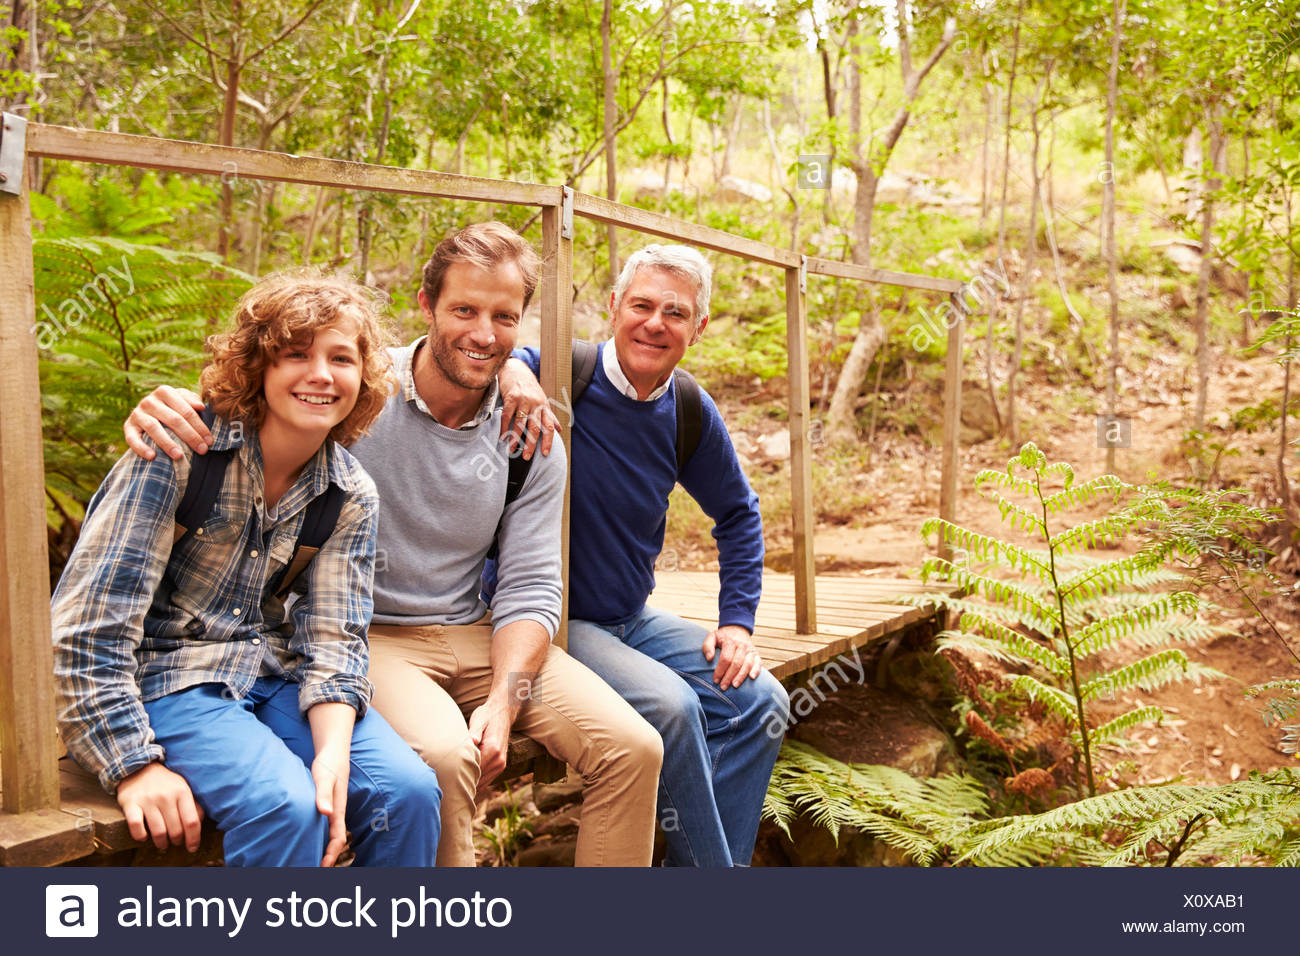 Three generations of men on a bridge in a forest, portrait - Stock Image